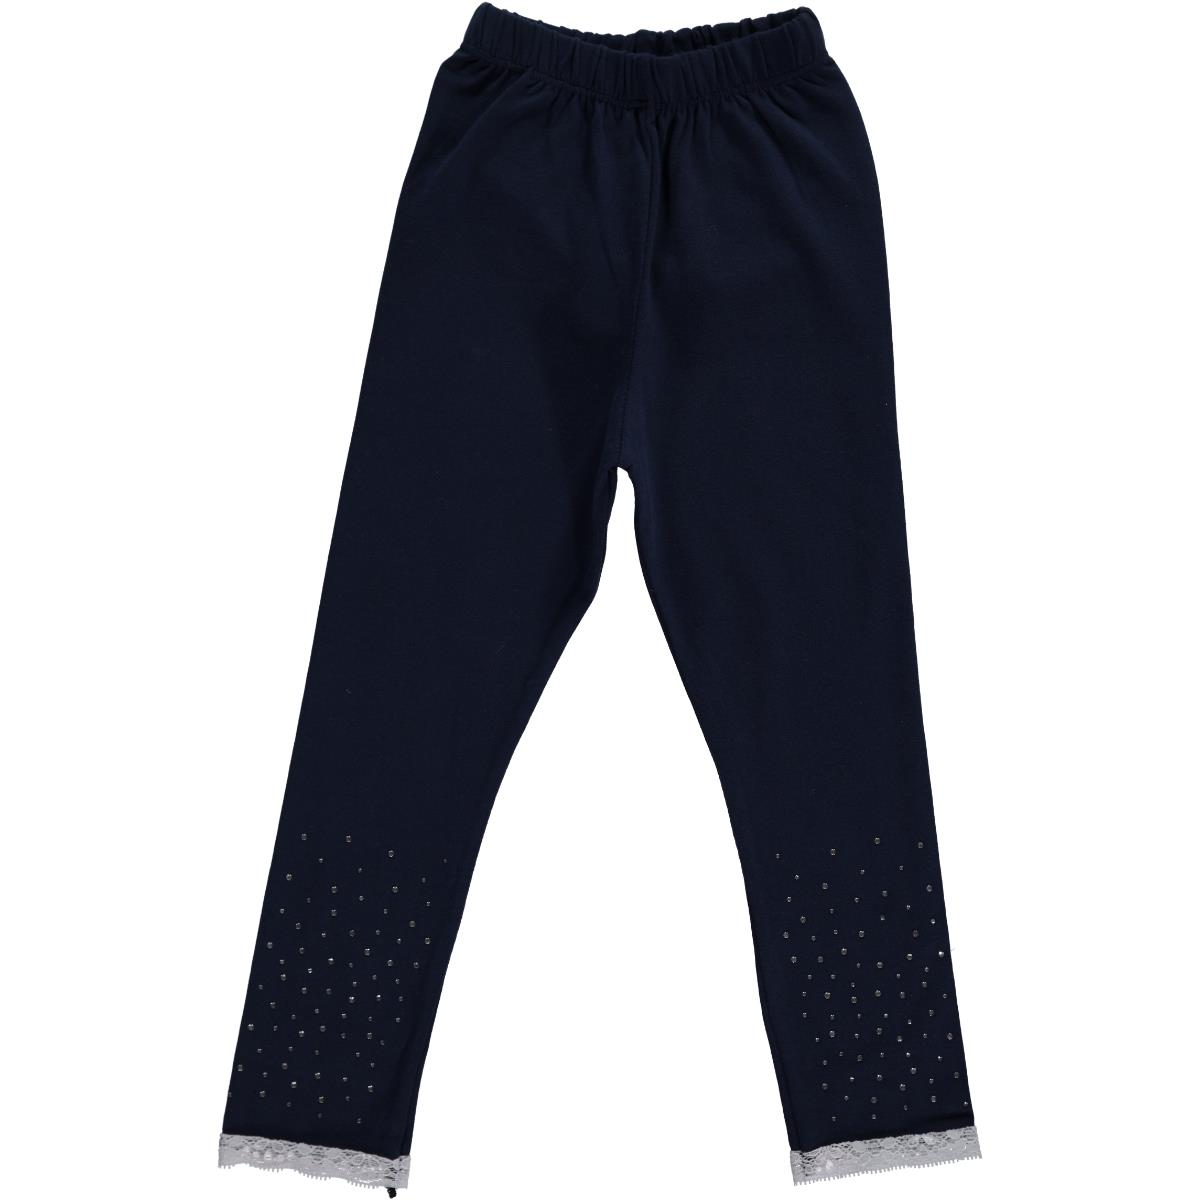 Tuffy The Girl Miss Navy Blue Tights 3-6 Years